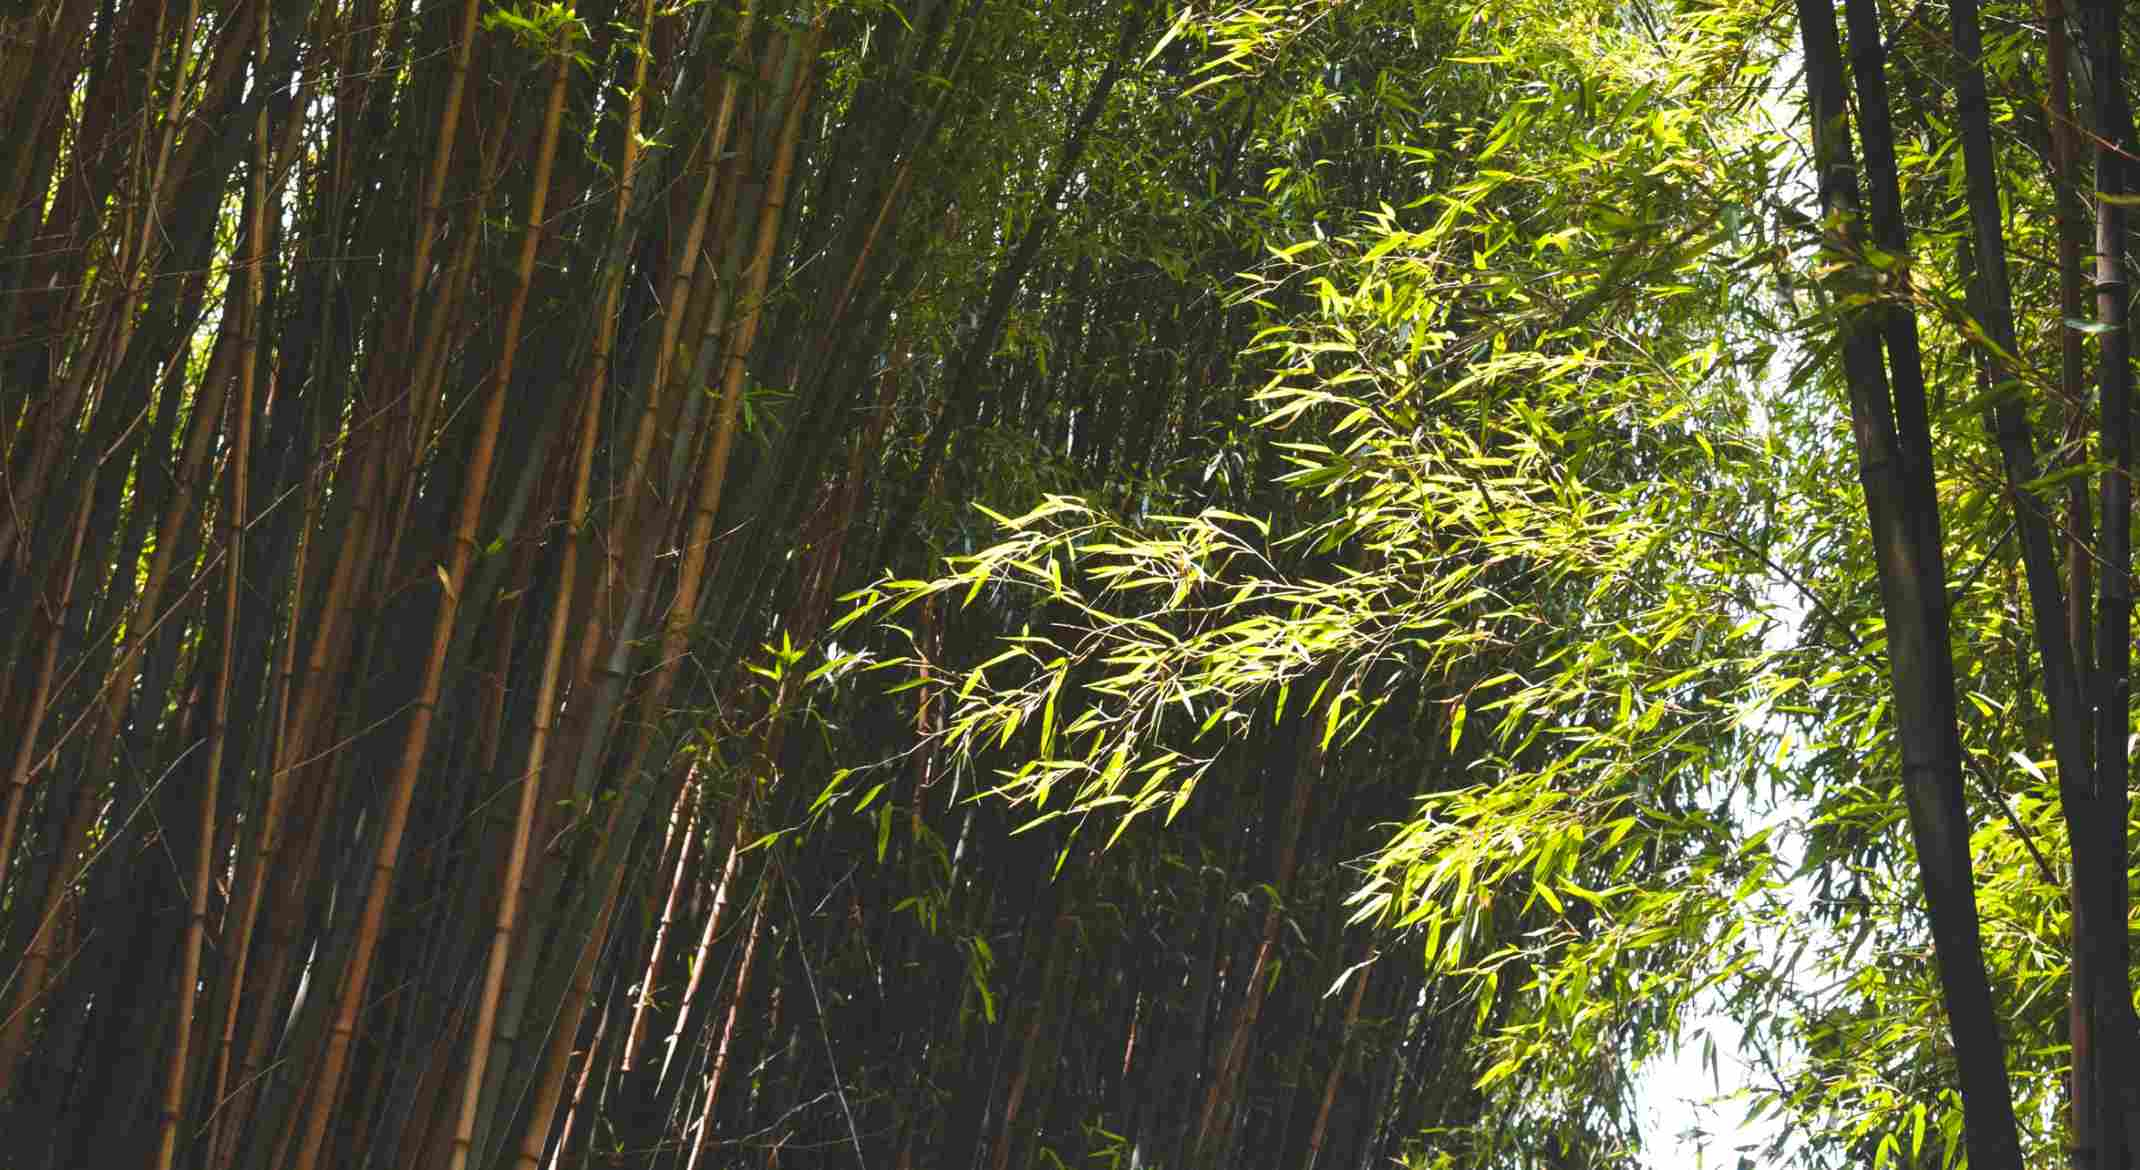 Growing bamboo in the desert